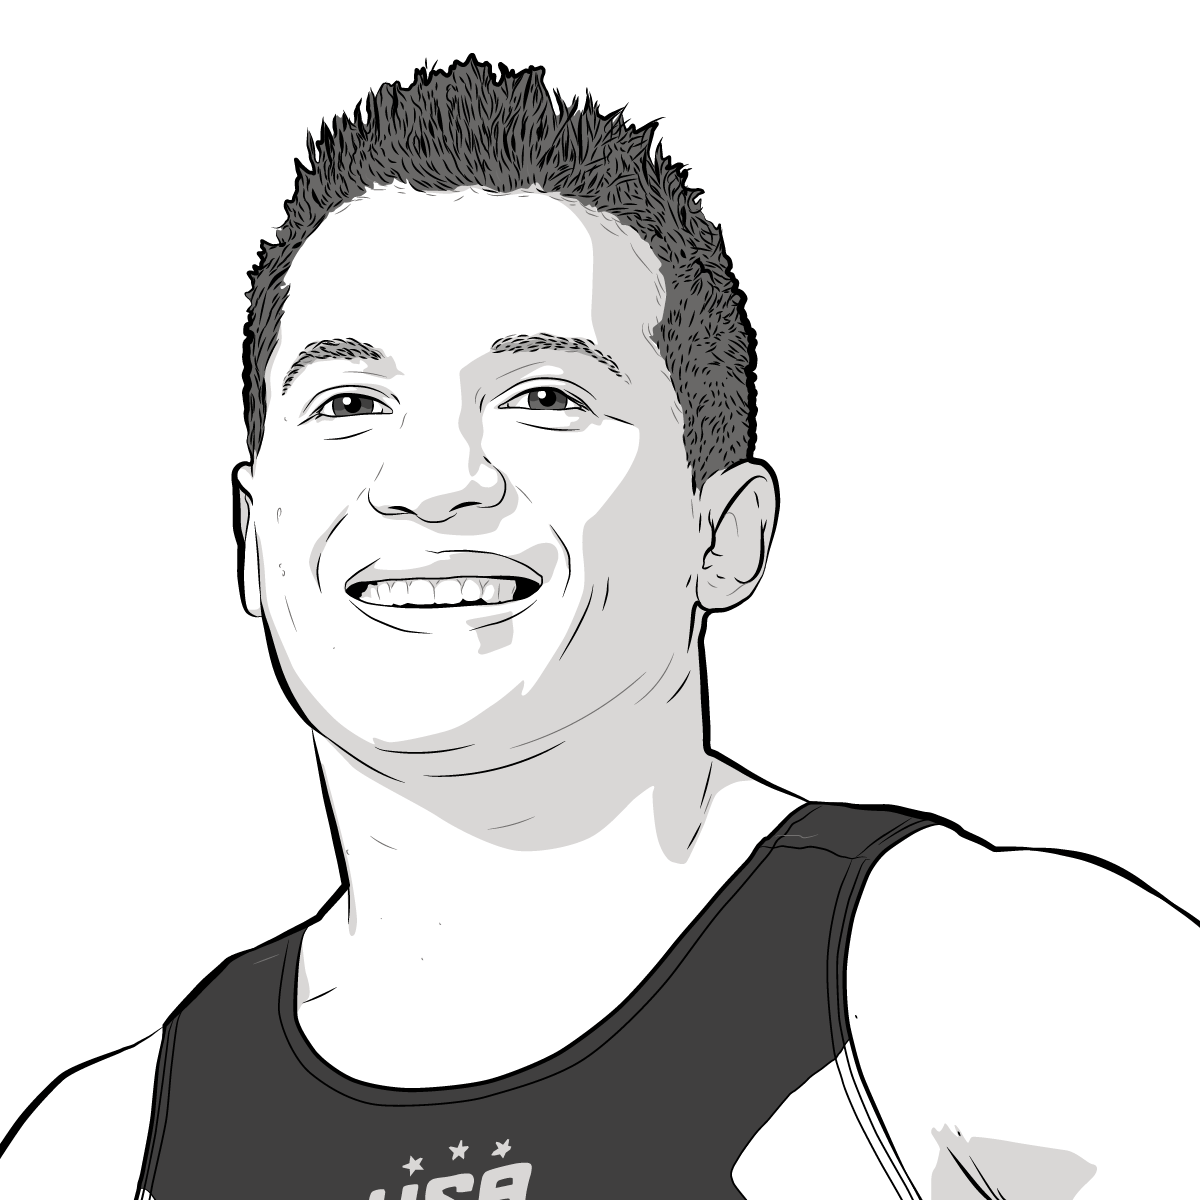 Athlete Portrait of Jonathan Horton, Illustration by Max Hancock